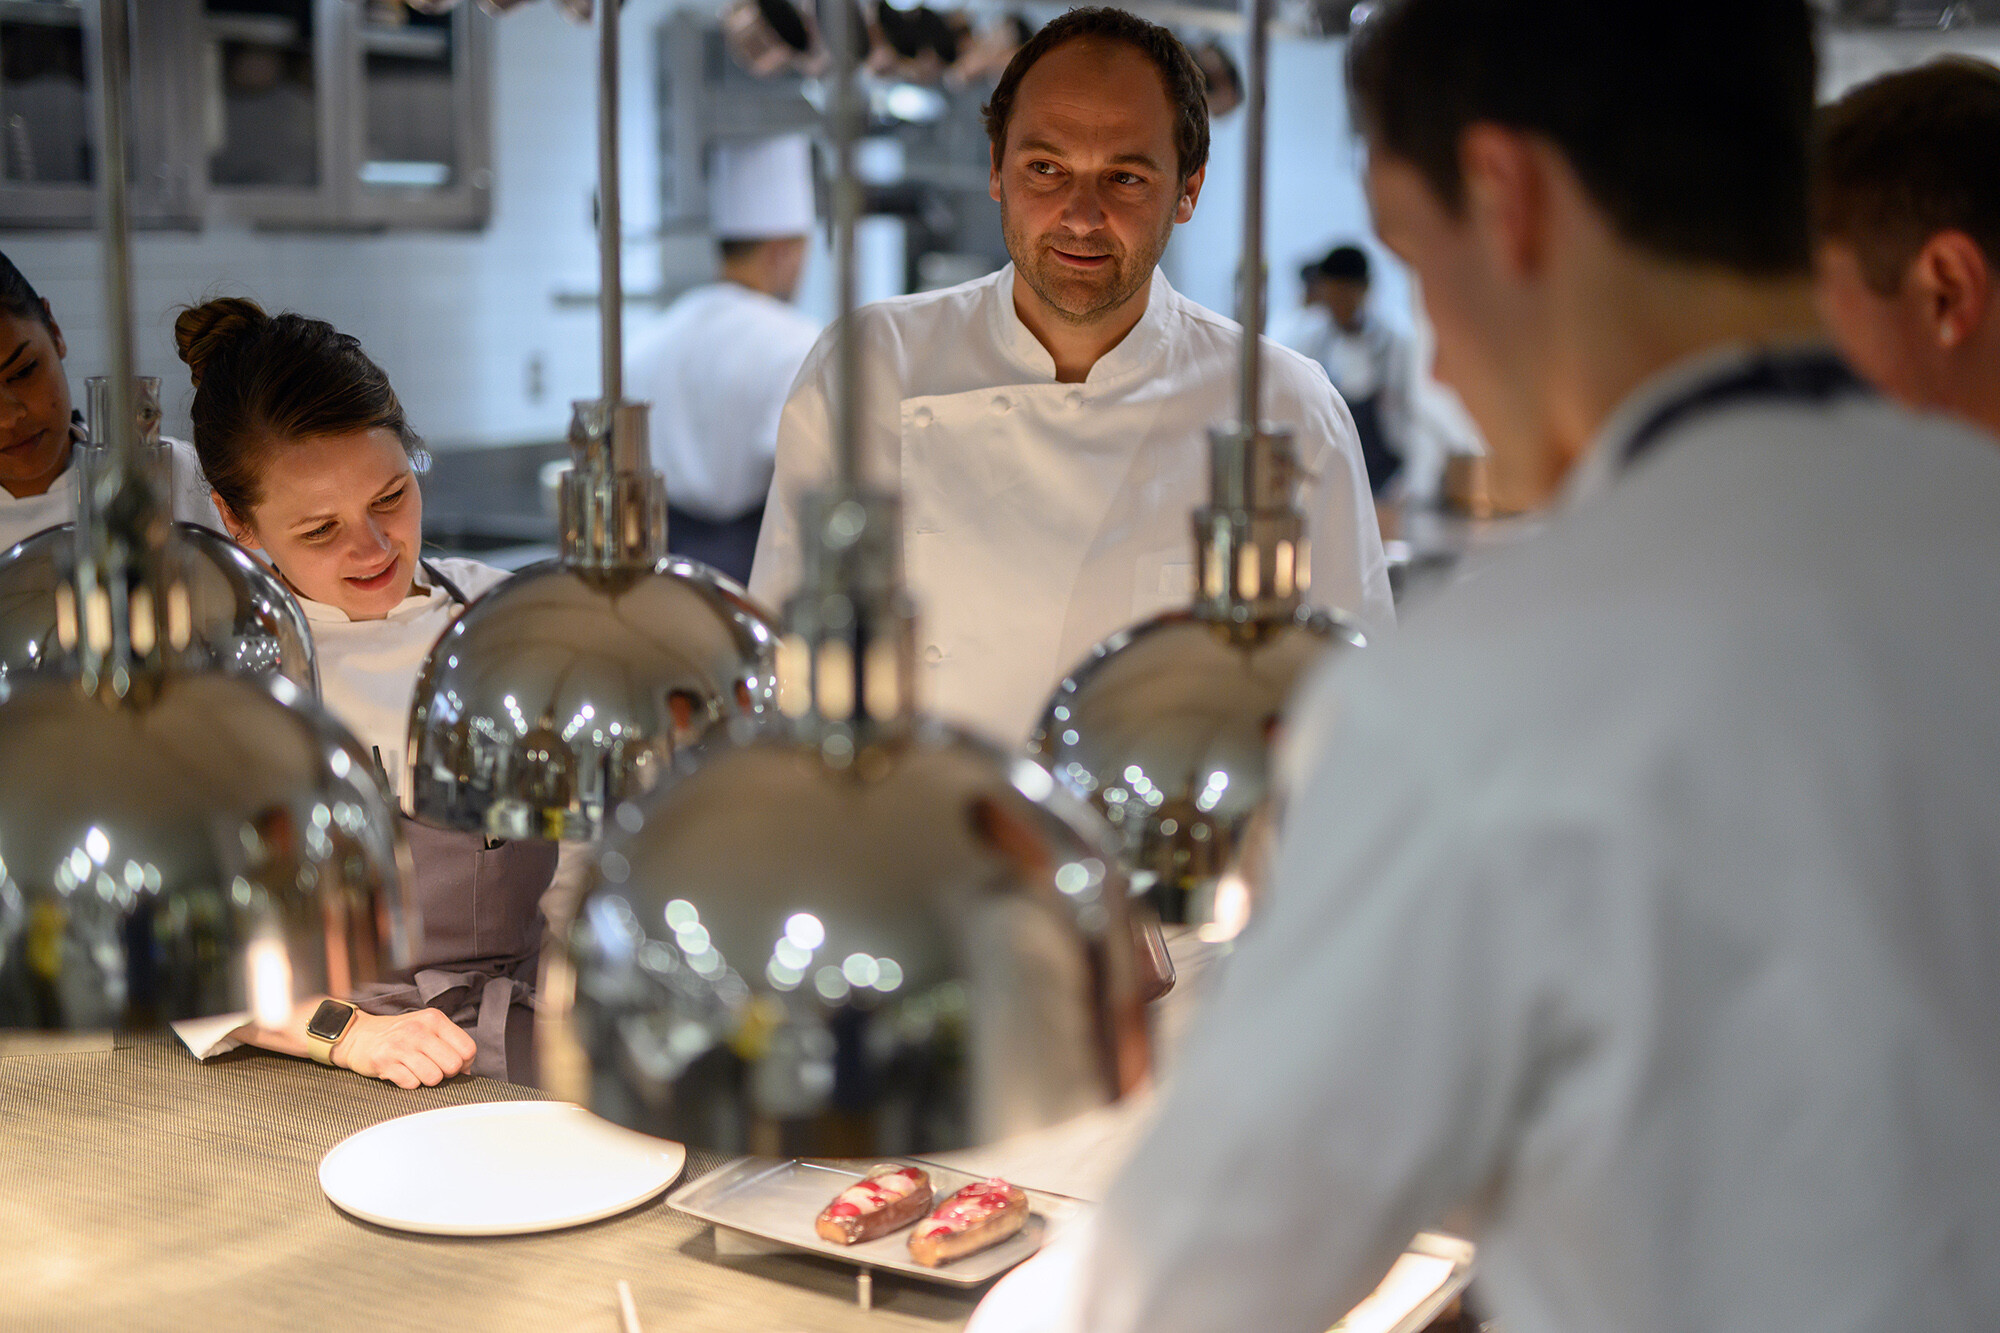 <i>Daniel Krieger/The New York Times/Redux</i><br/>Chef Daniel Humm and his staff have faced some scathing reviews of his new restaurant Eleven Madison Park.